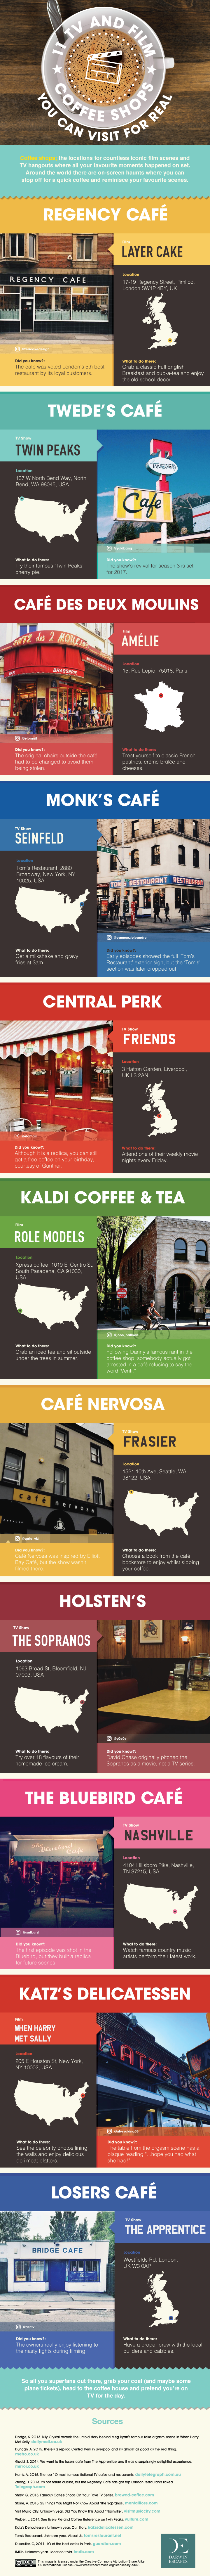 11 TV & Film Coffee Shops You Can Visit For Real [Infographic]